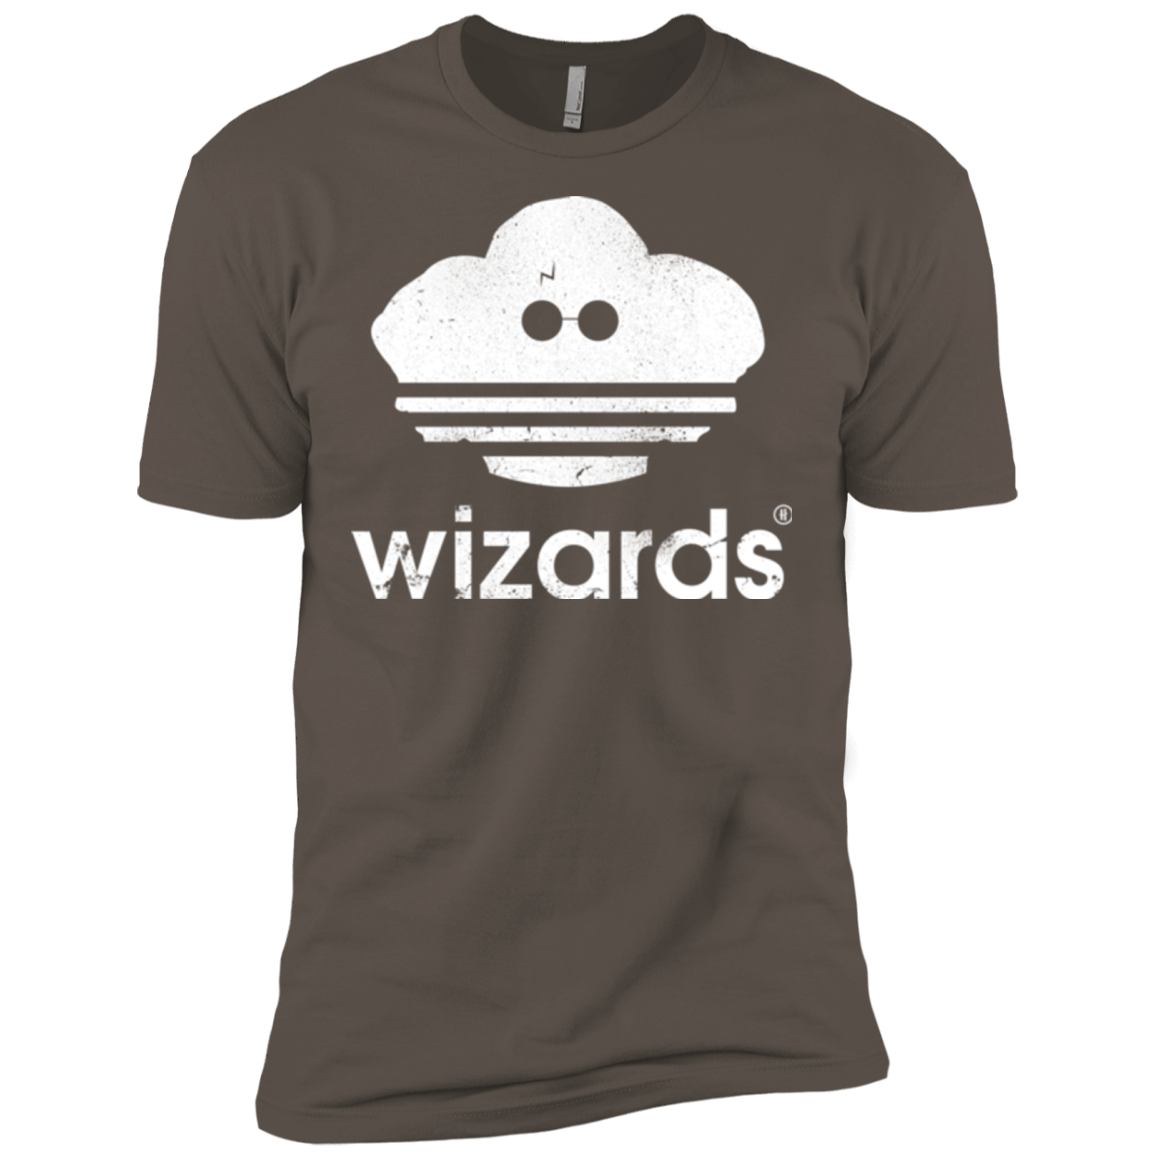 T-Shirts Warm Grey / X-Small Wizards Men's Premium T-Shirt